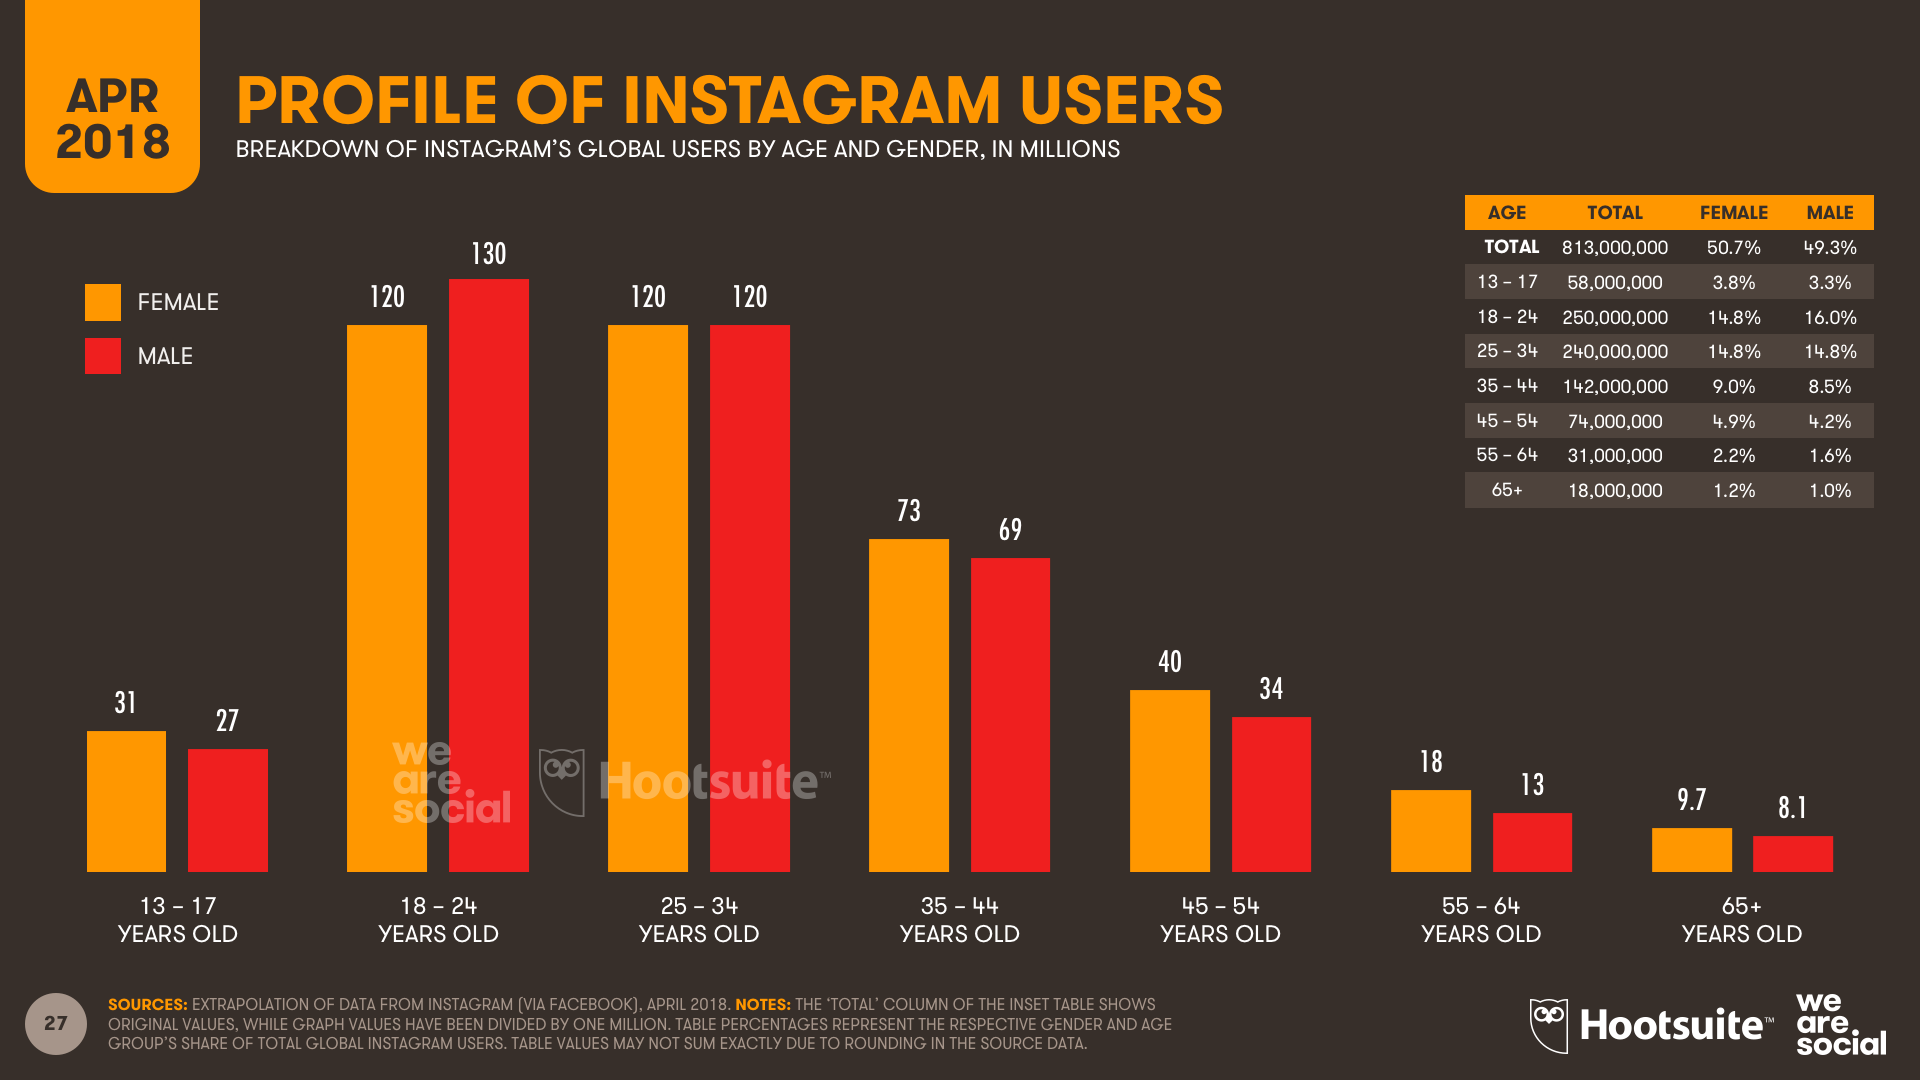 Instagram Age Profile - Q1 2018